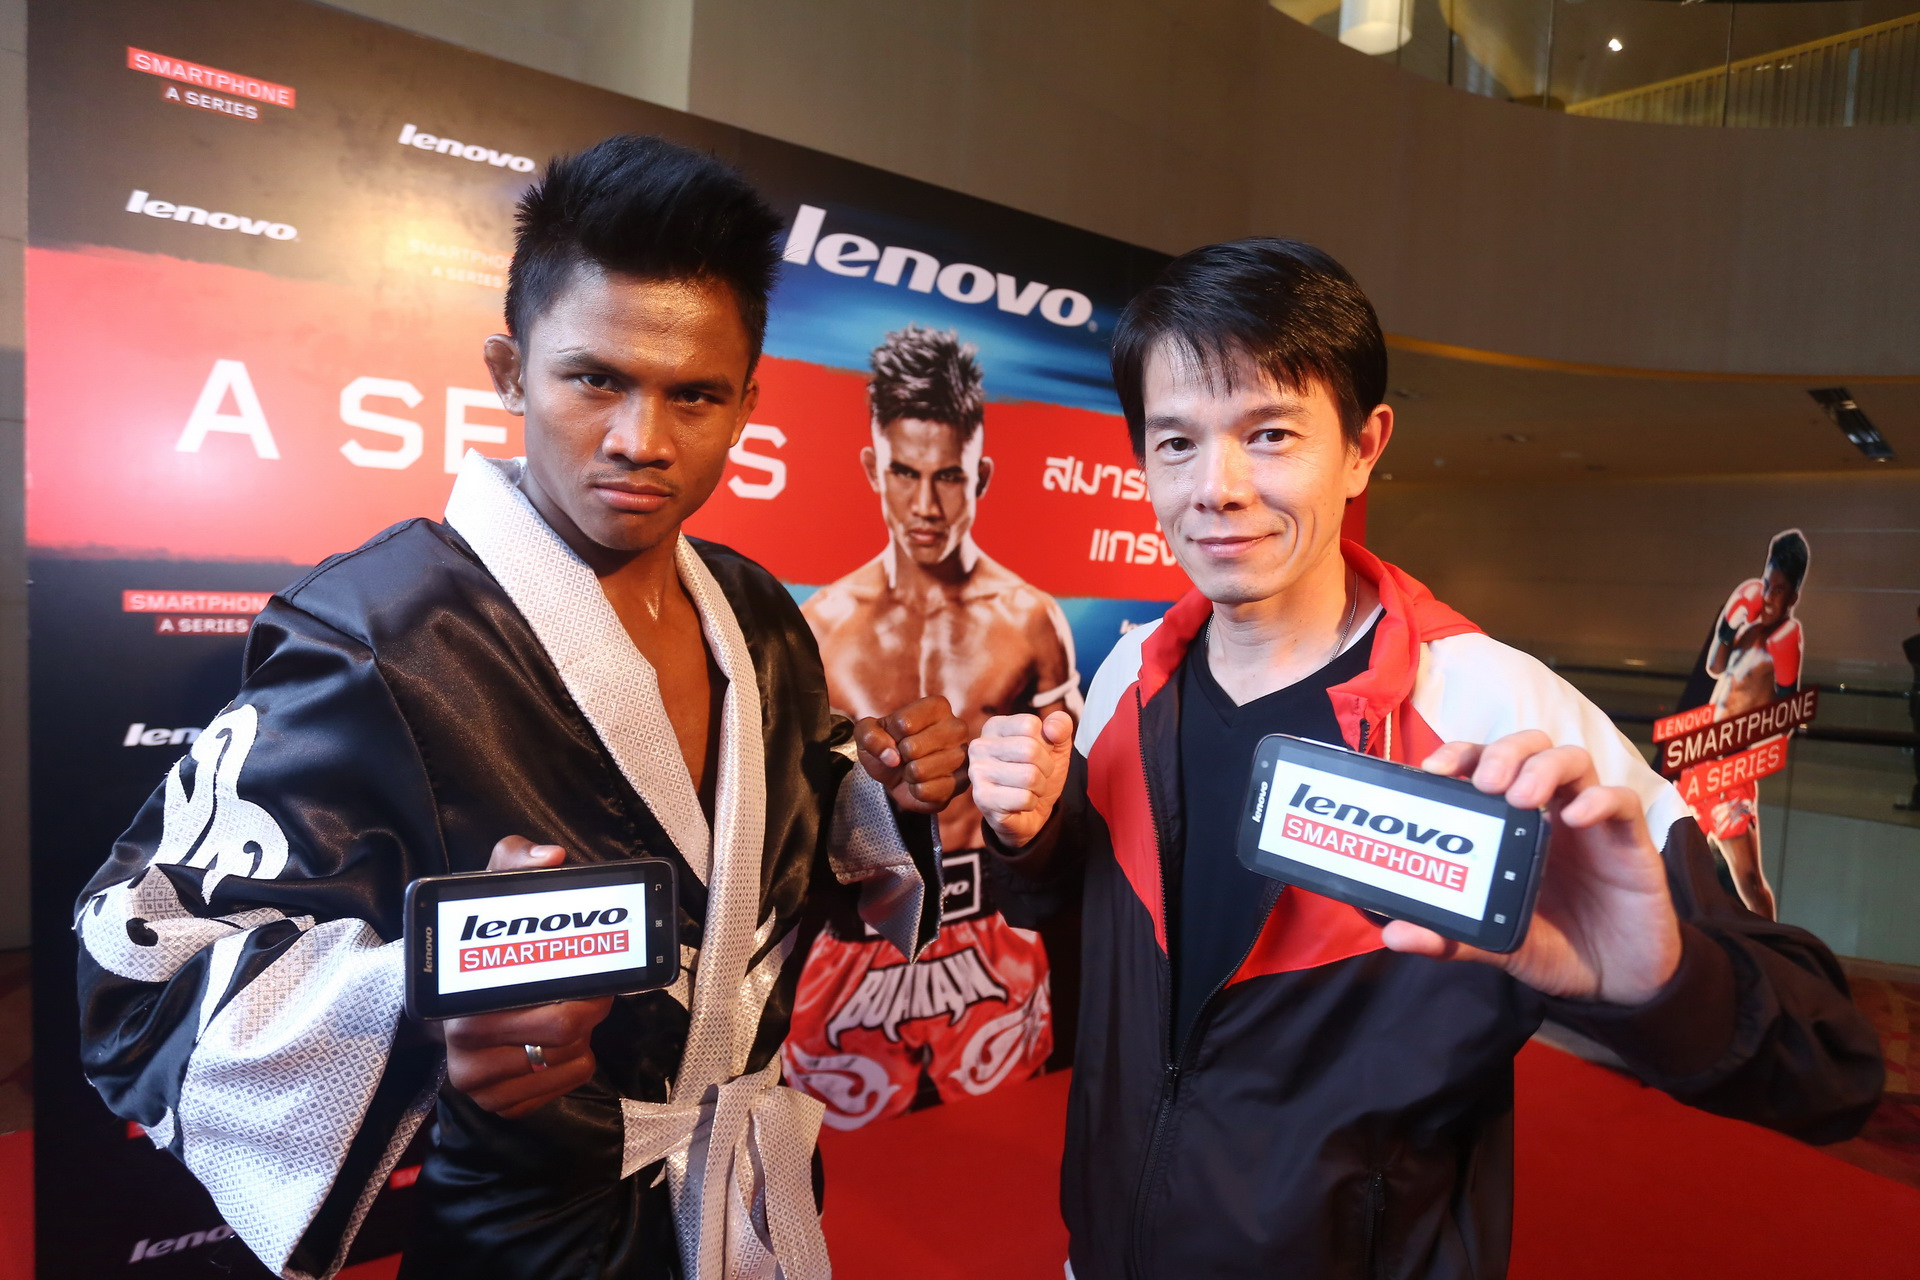 Lenovo A Series Launch (2)_resize